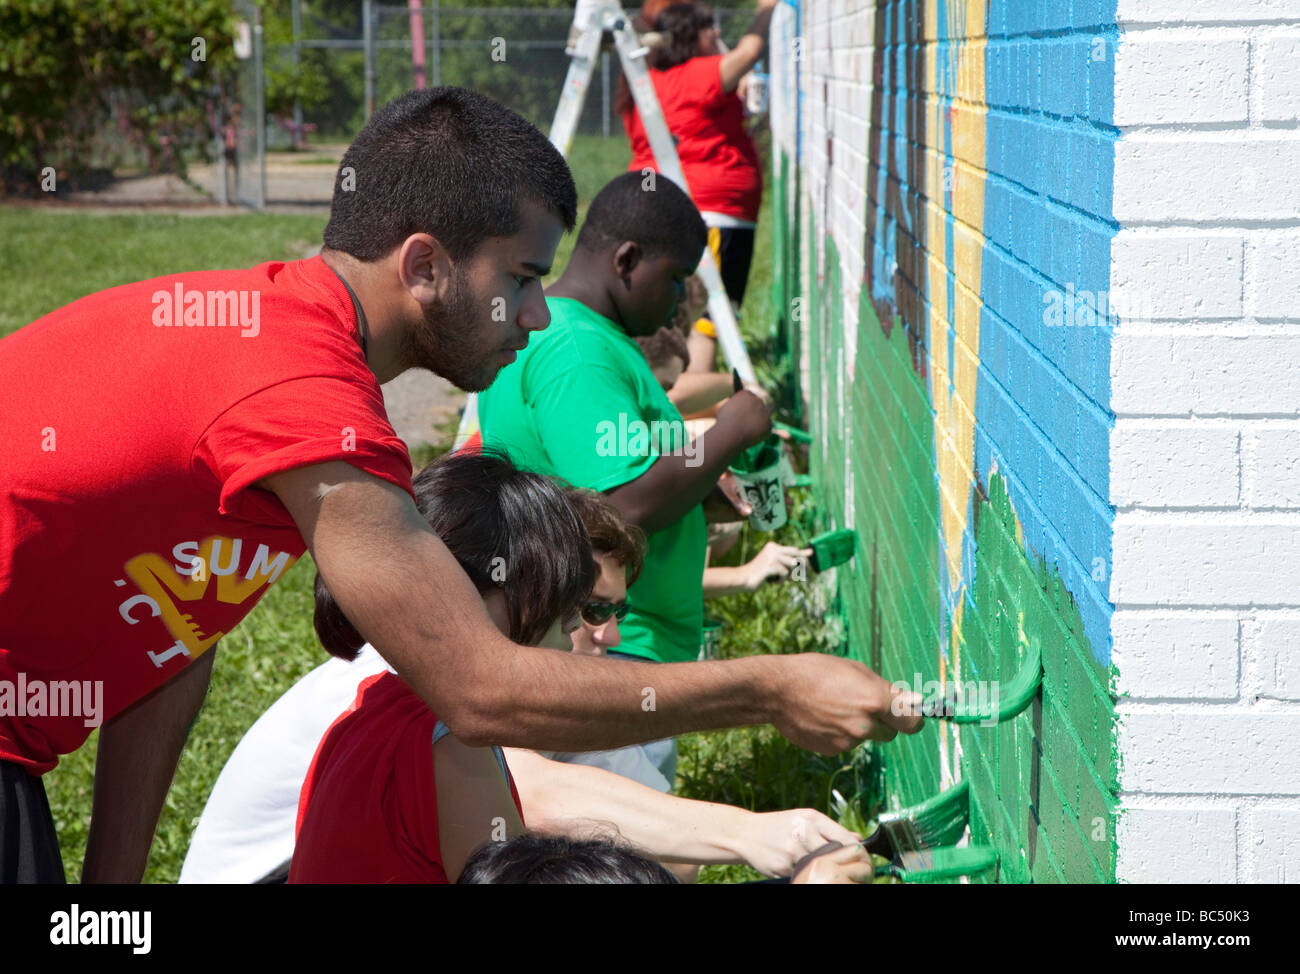 Youth volunteers paint wall in city park - Stock Image